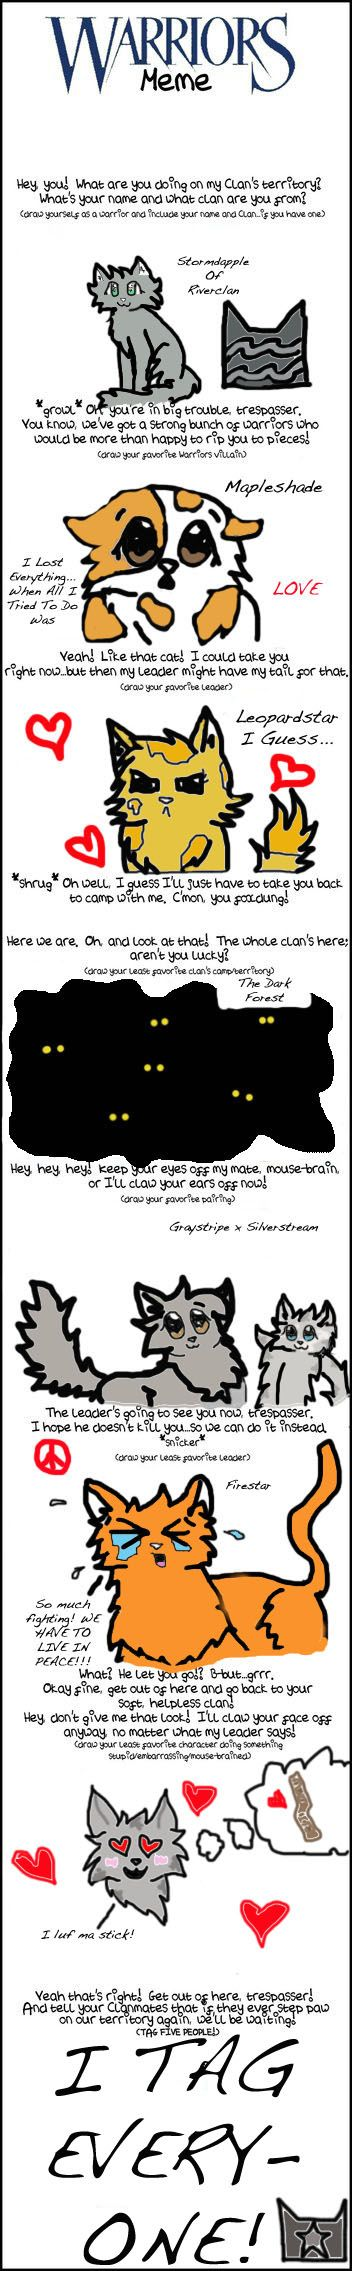 Hate what she said about fire star hahaha lol jayfeather